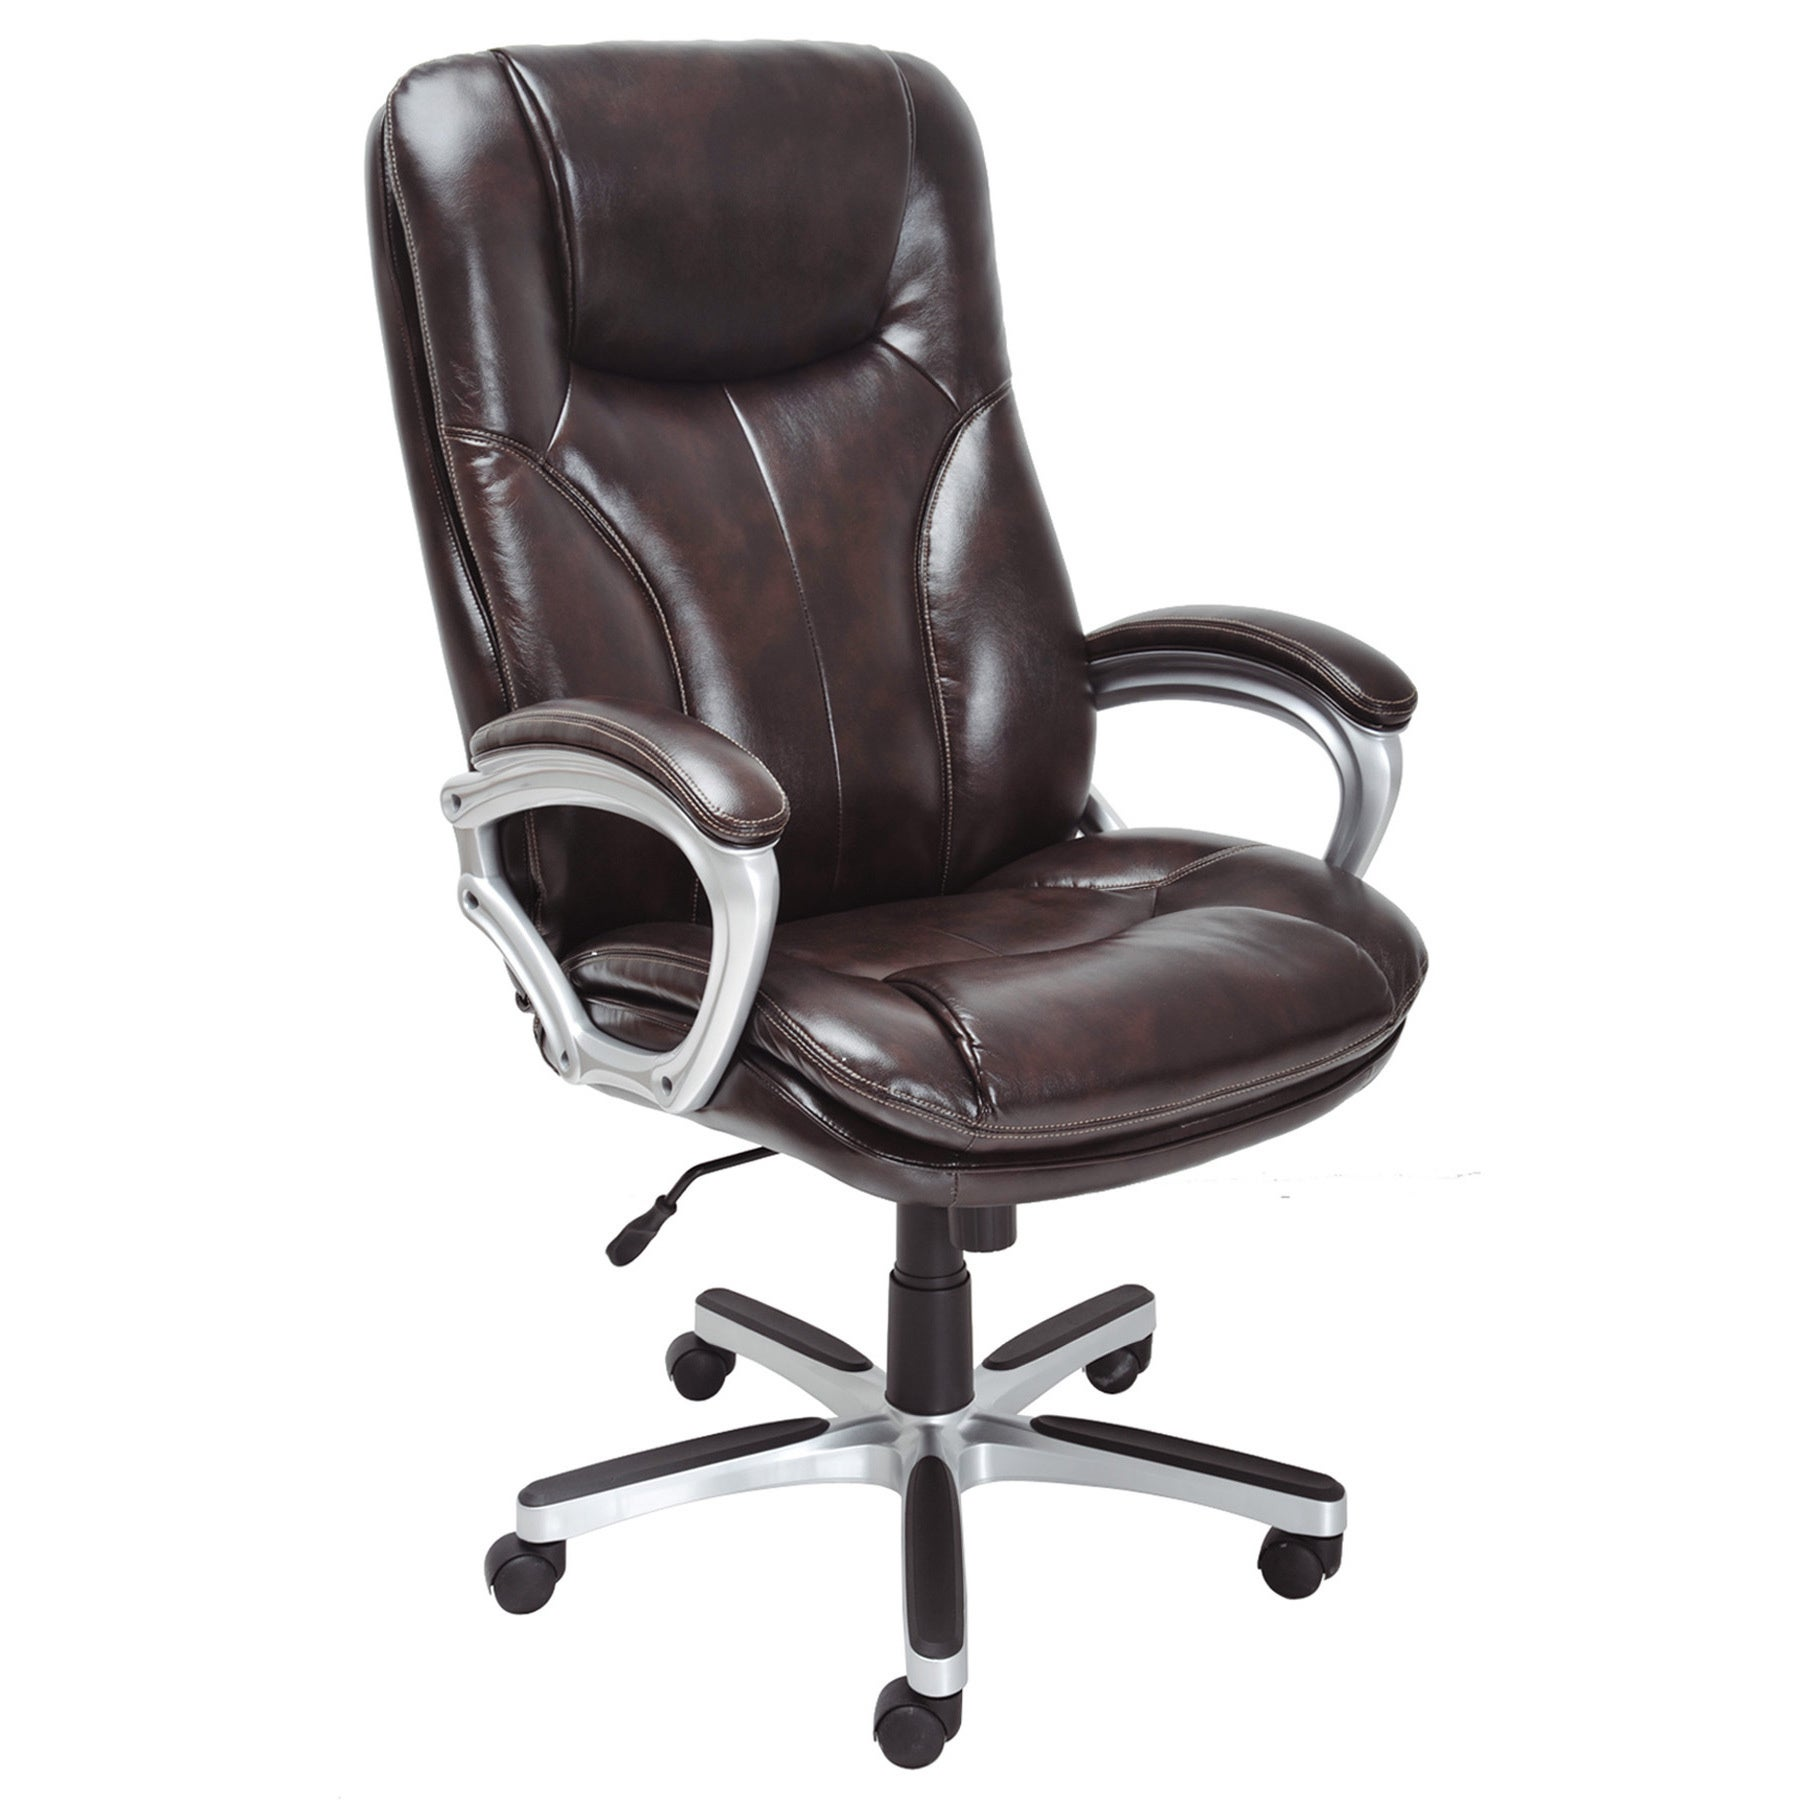 Serta Puresoft Faux Leather Roasted Chestnut Executive And Tall Office Chair